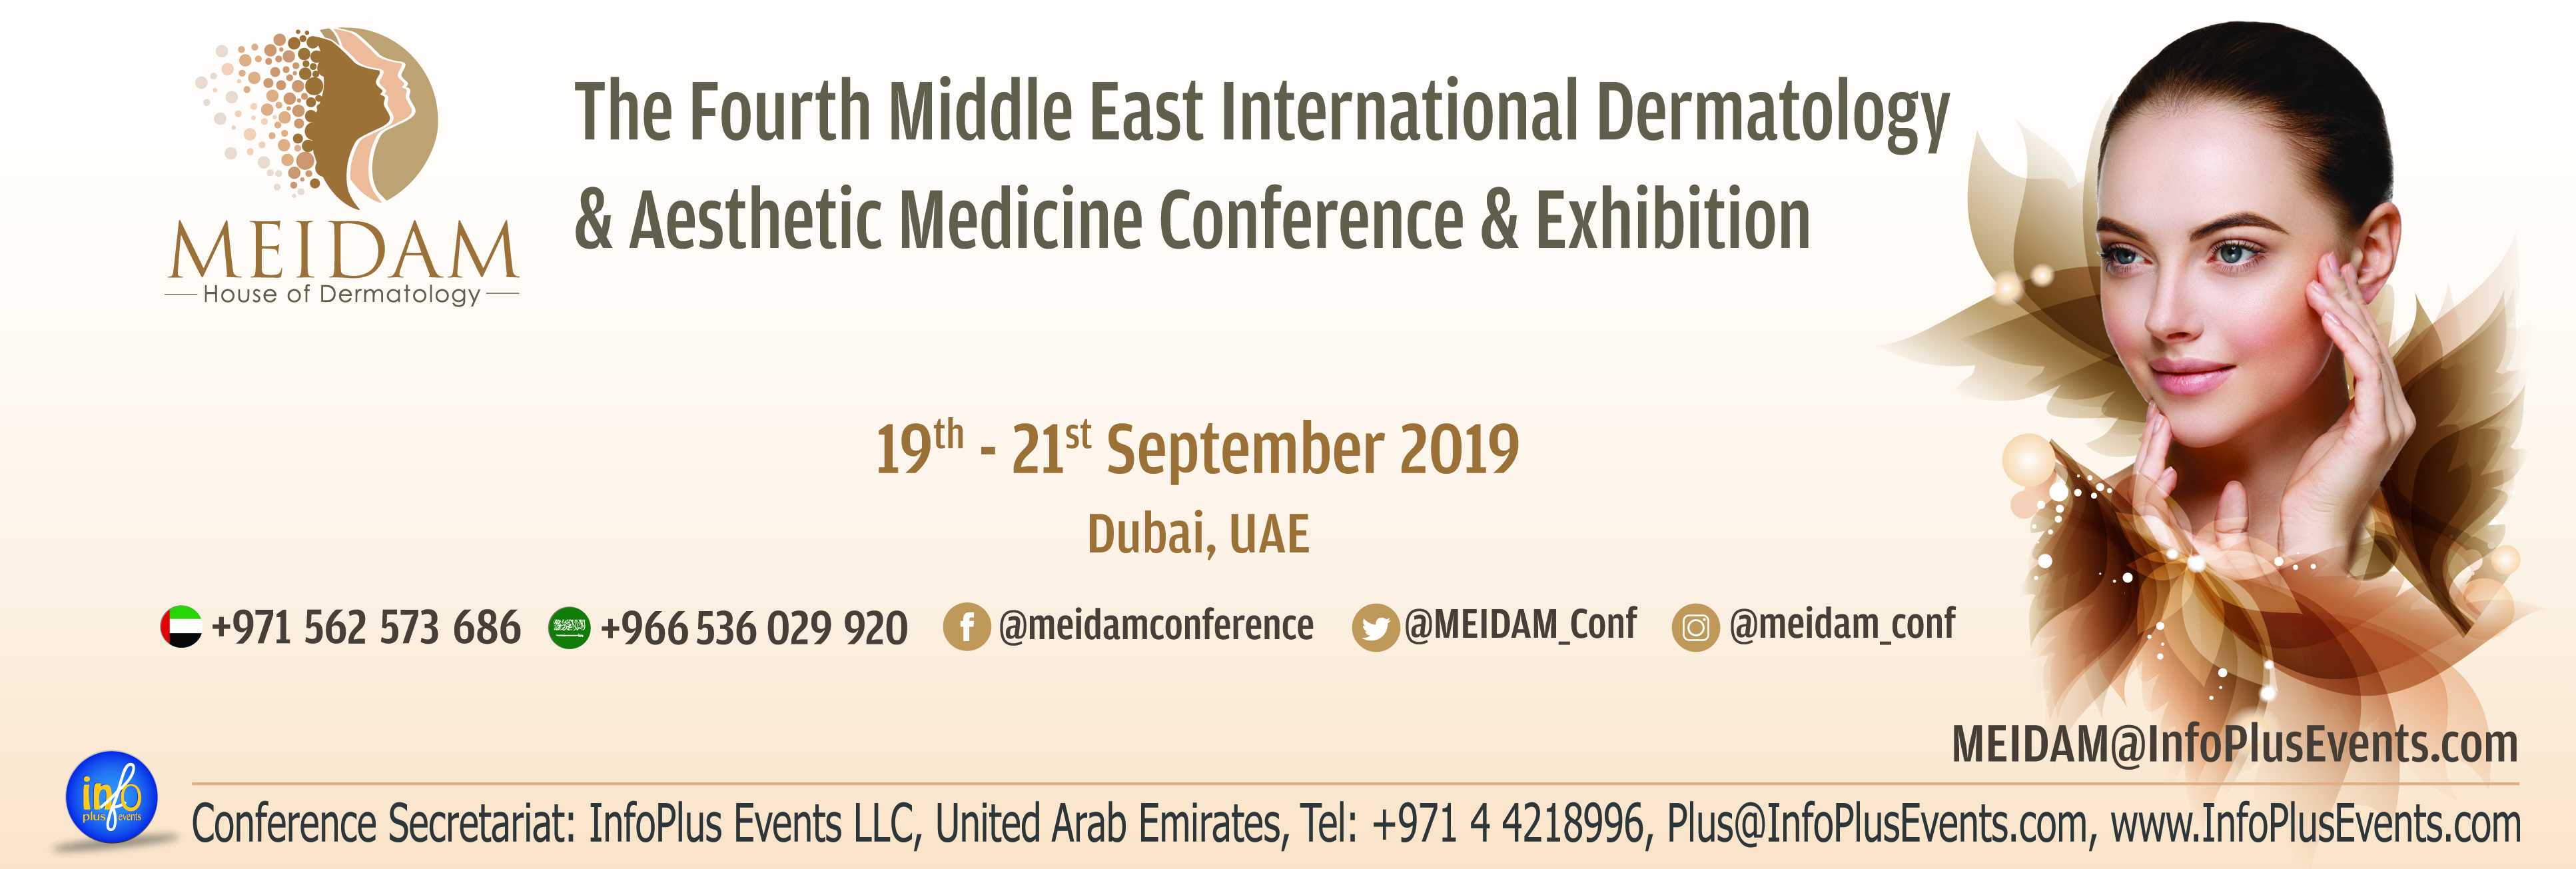 4th Middle East International Dermatology & Aesthetic Medicine Conference & Exhibition (MEIDAM) The House of Dermatology, 19th - 21st September, 2019